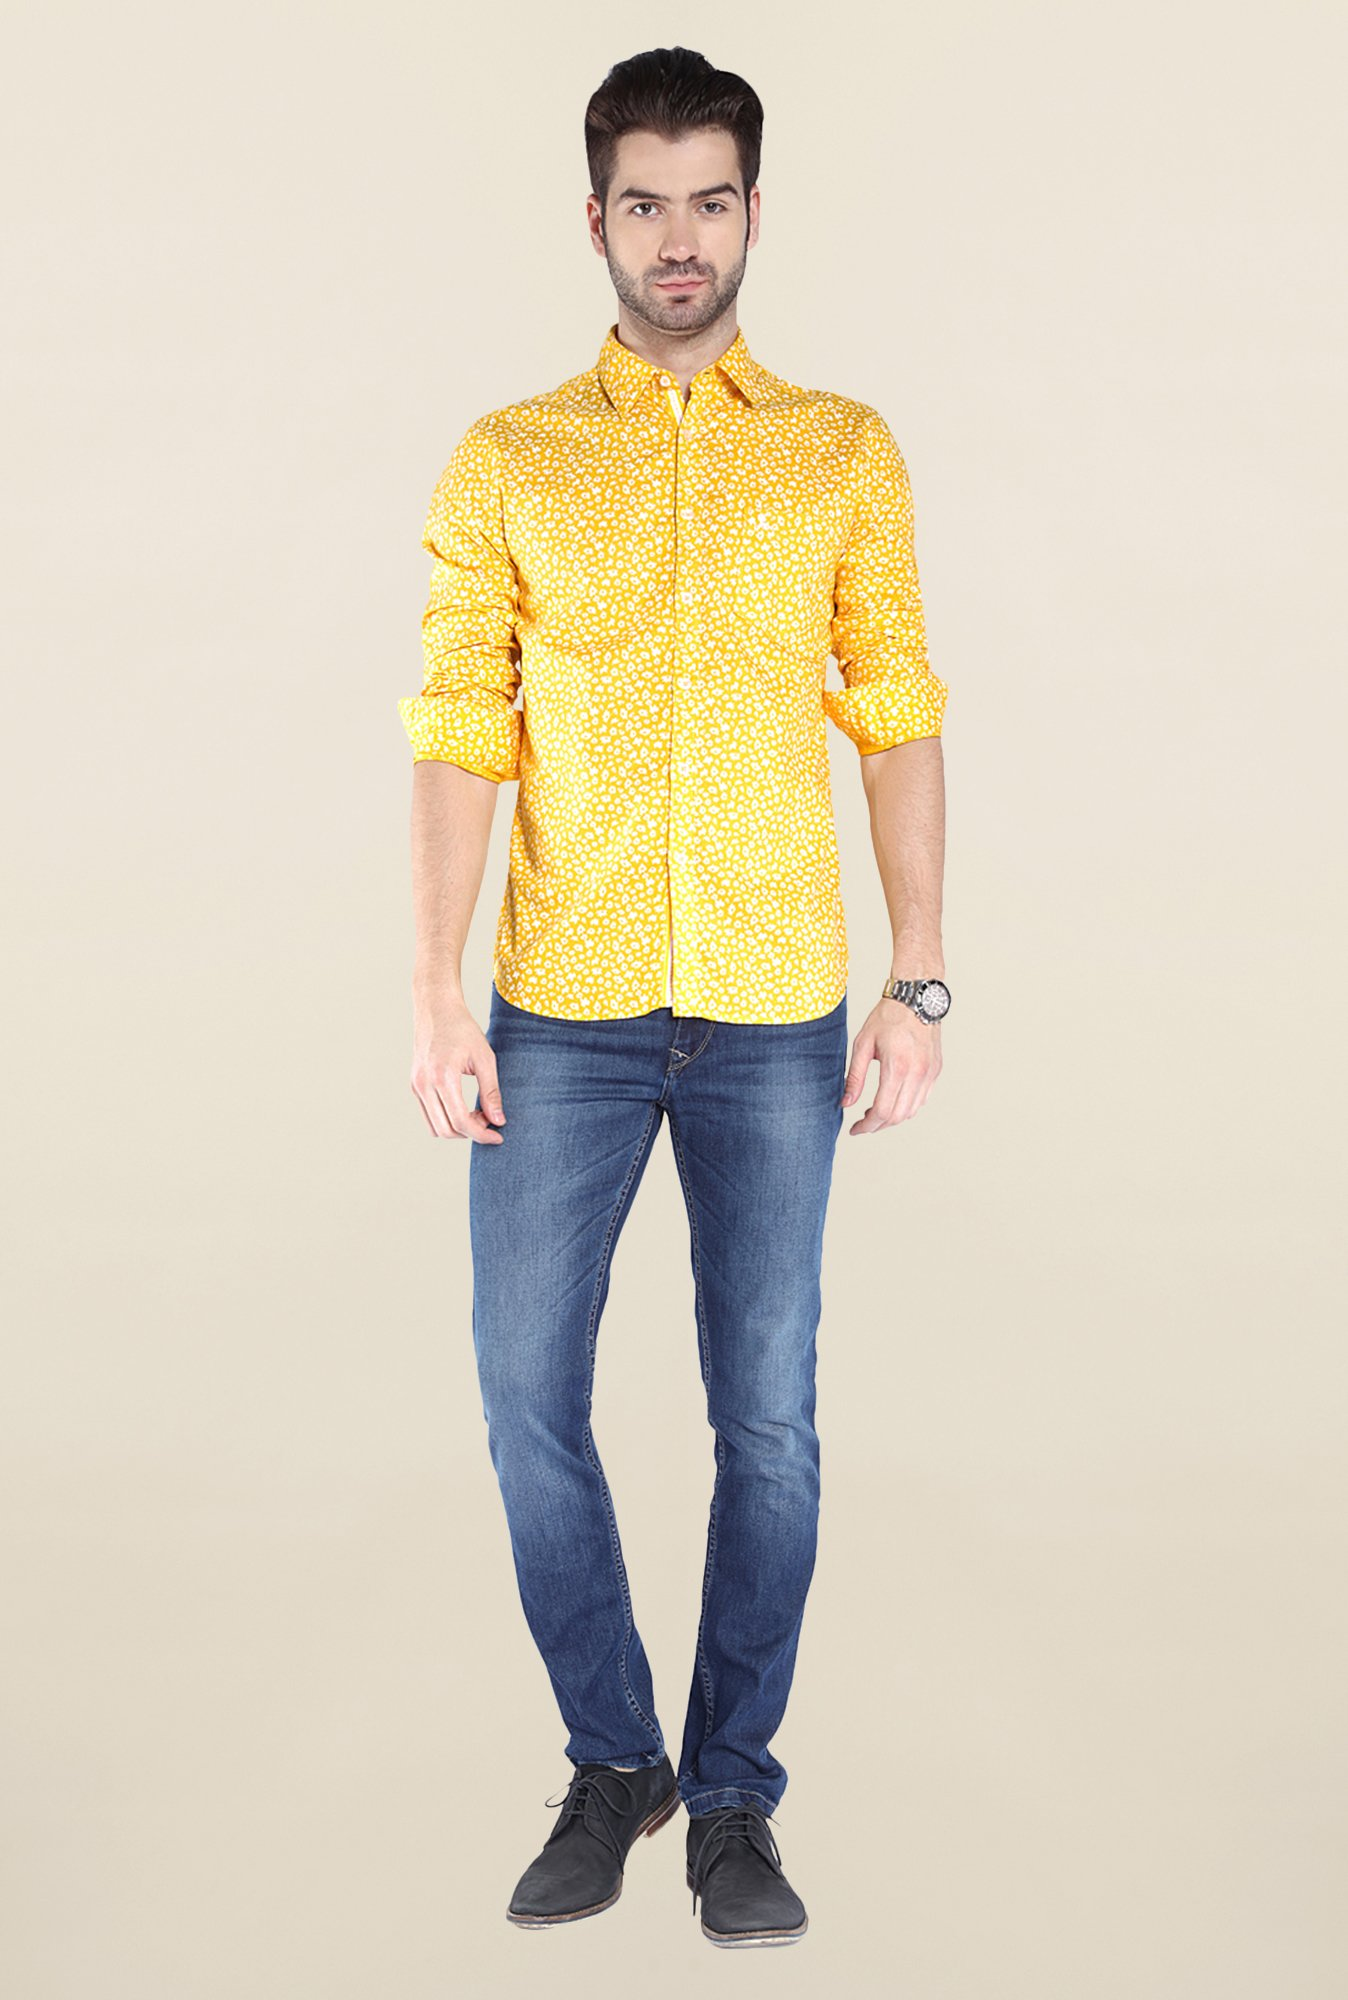 Parx Yellow Printed Shirt